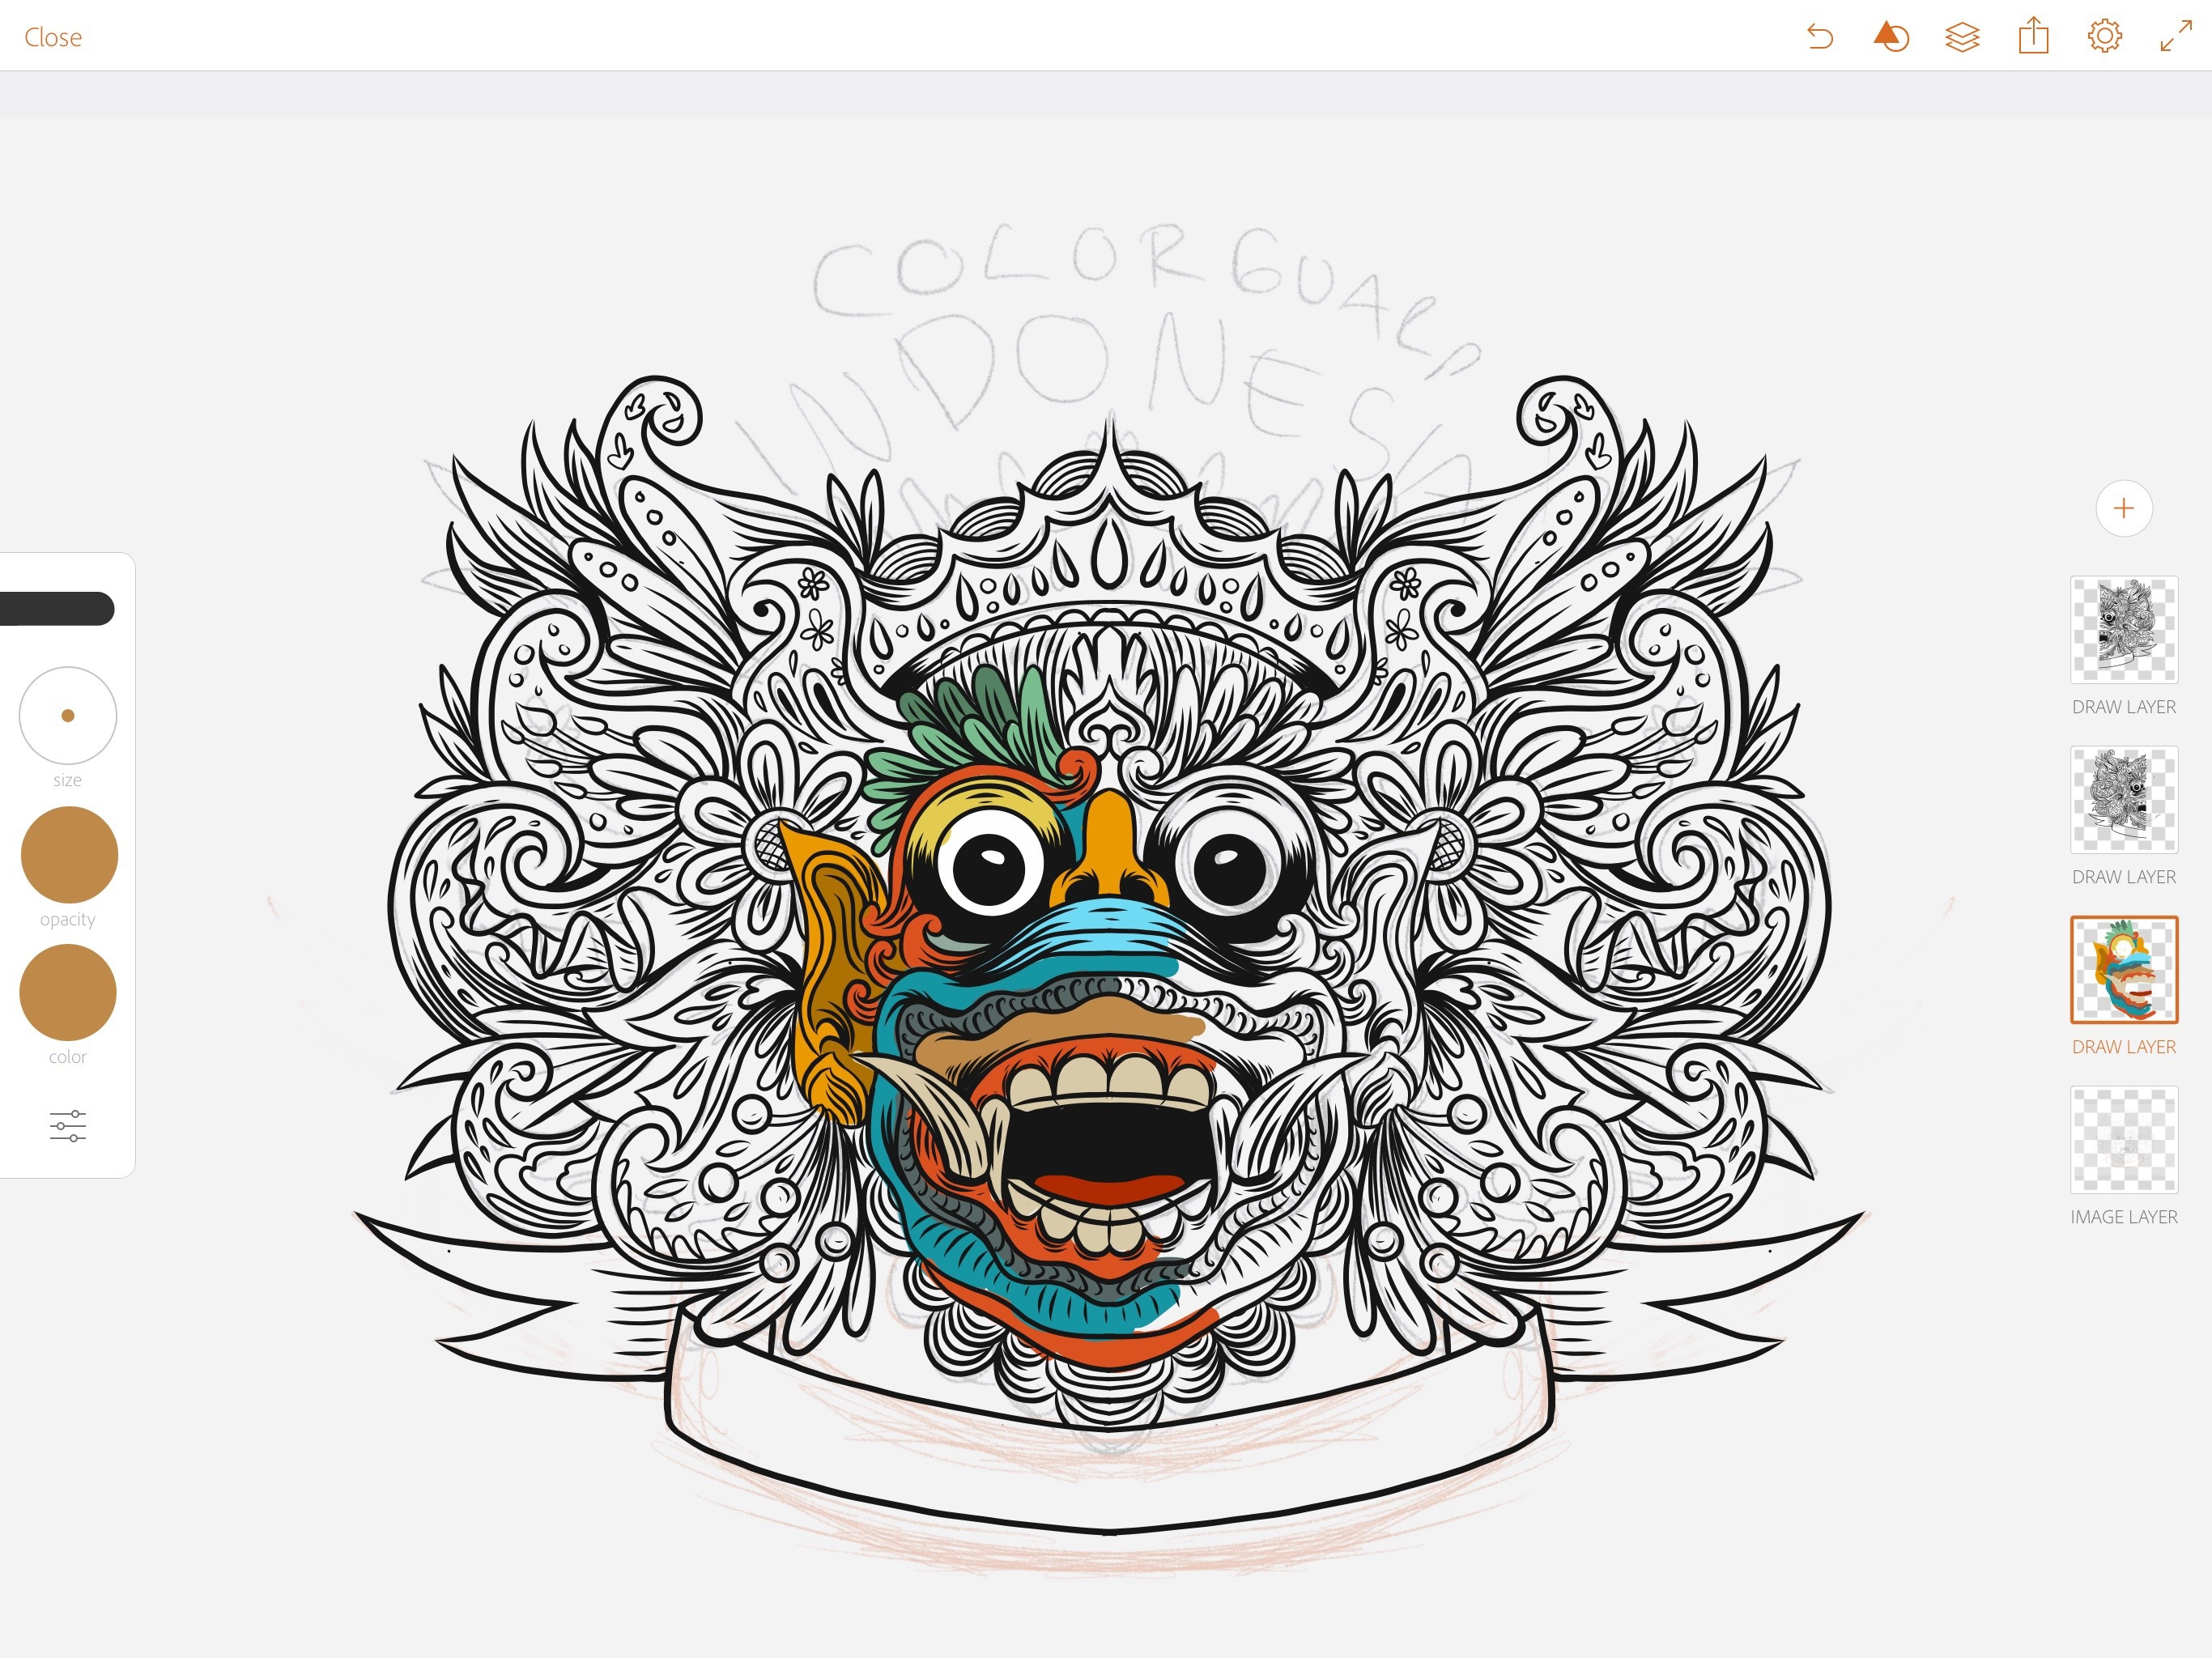 Co color to draw - Co Color Guard Artwork Create Vector Online On Adobe Draw App Blocking Color